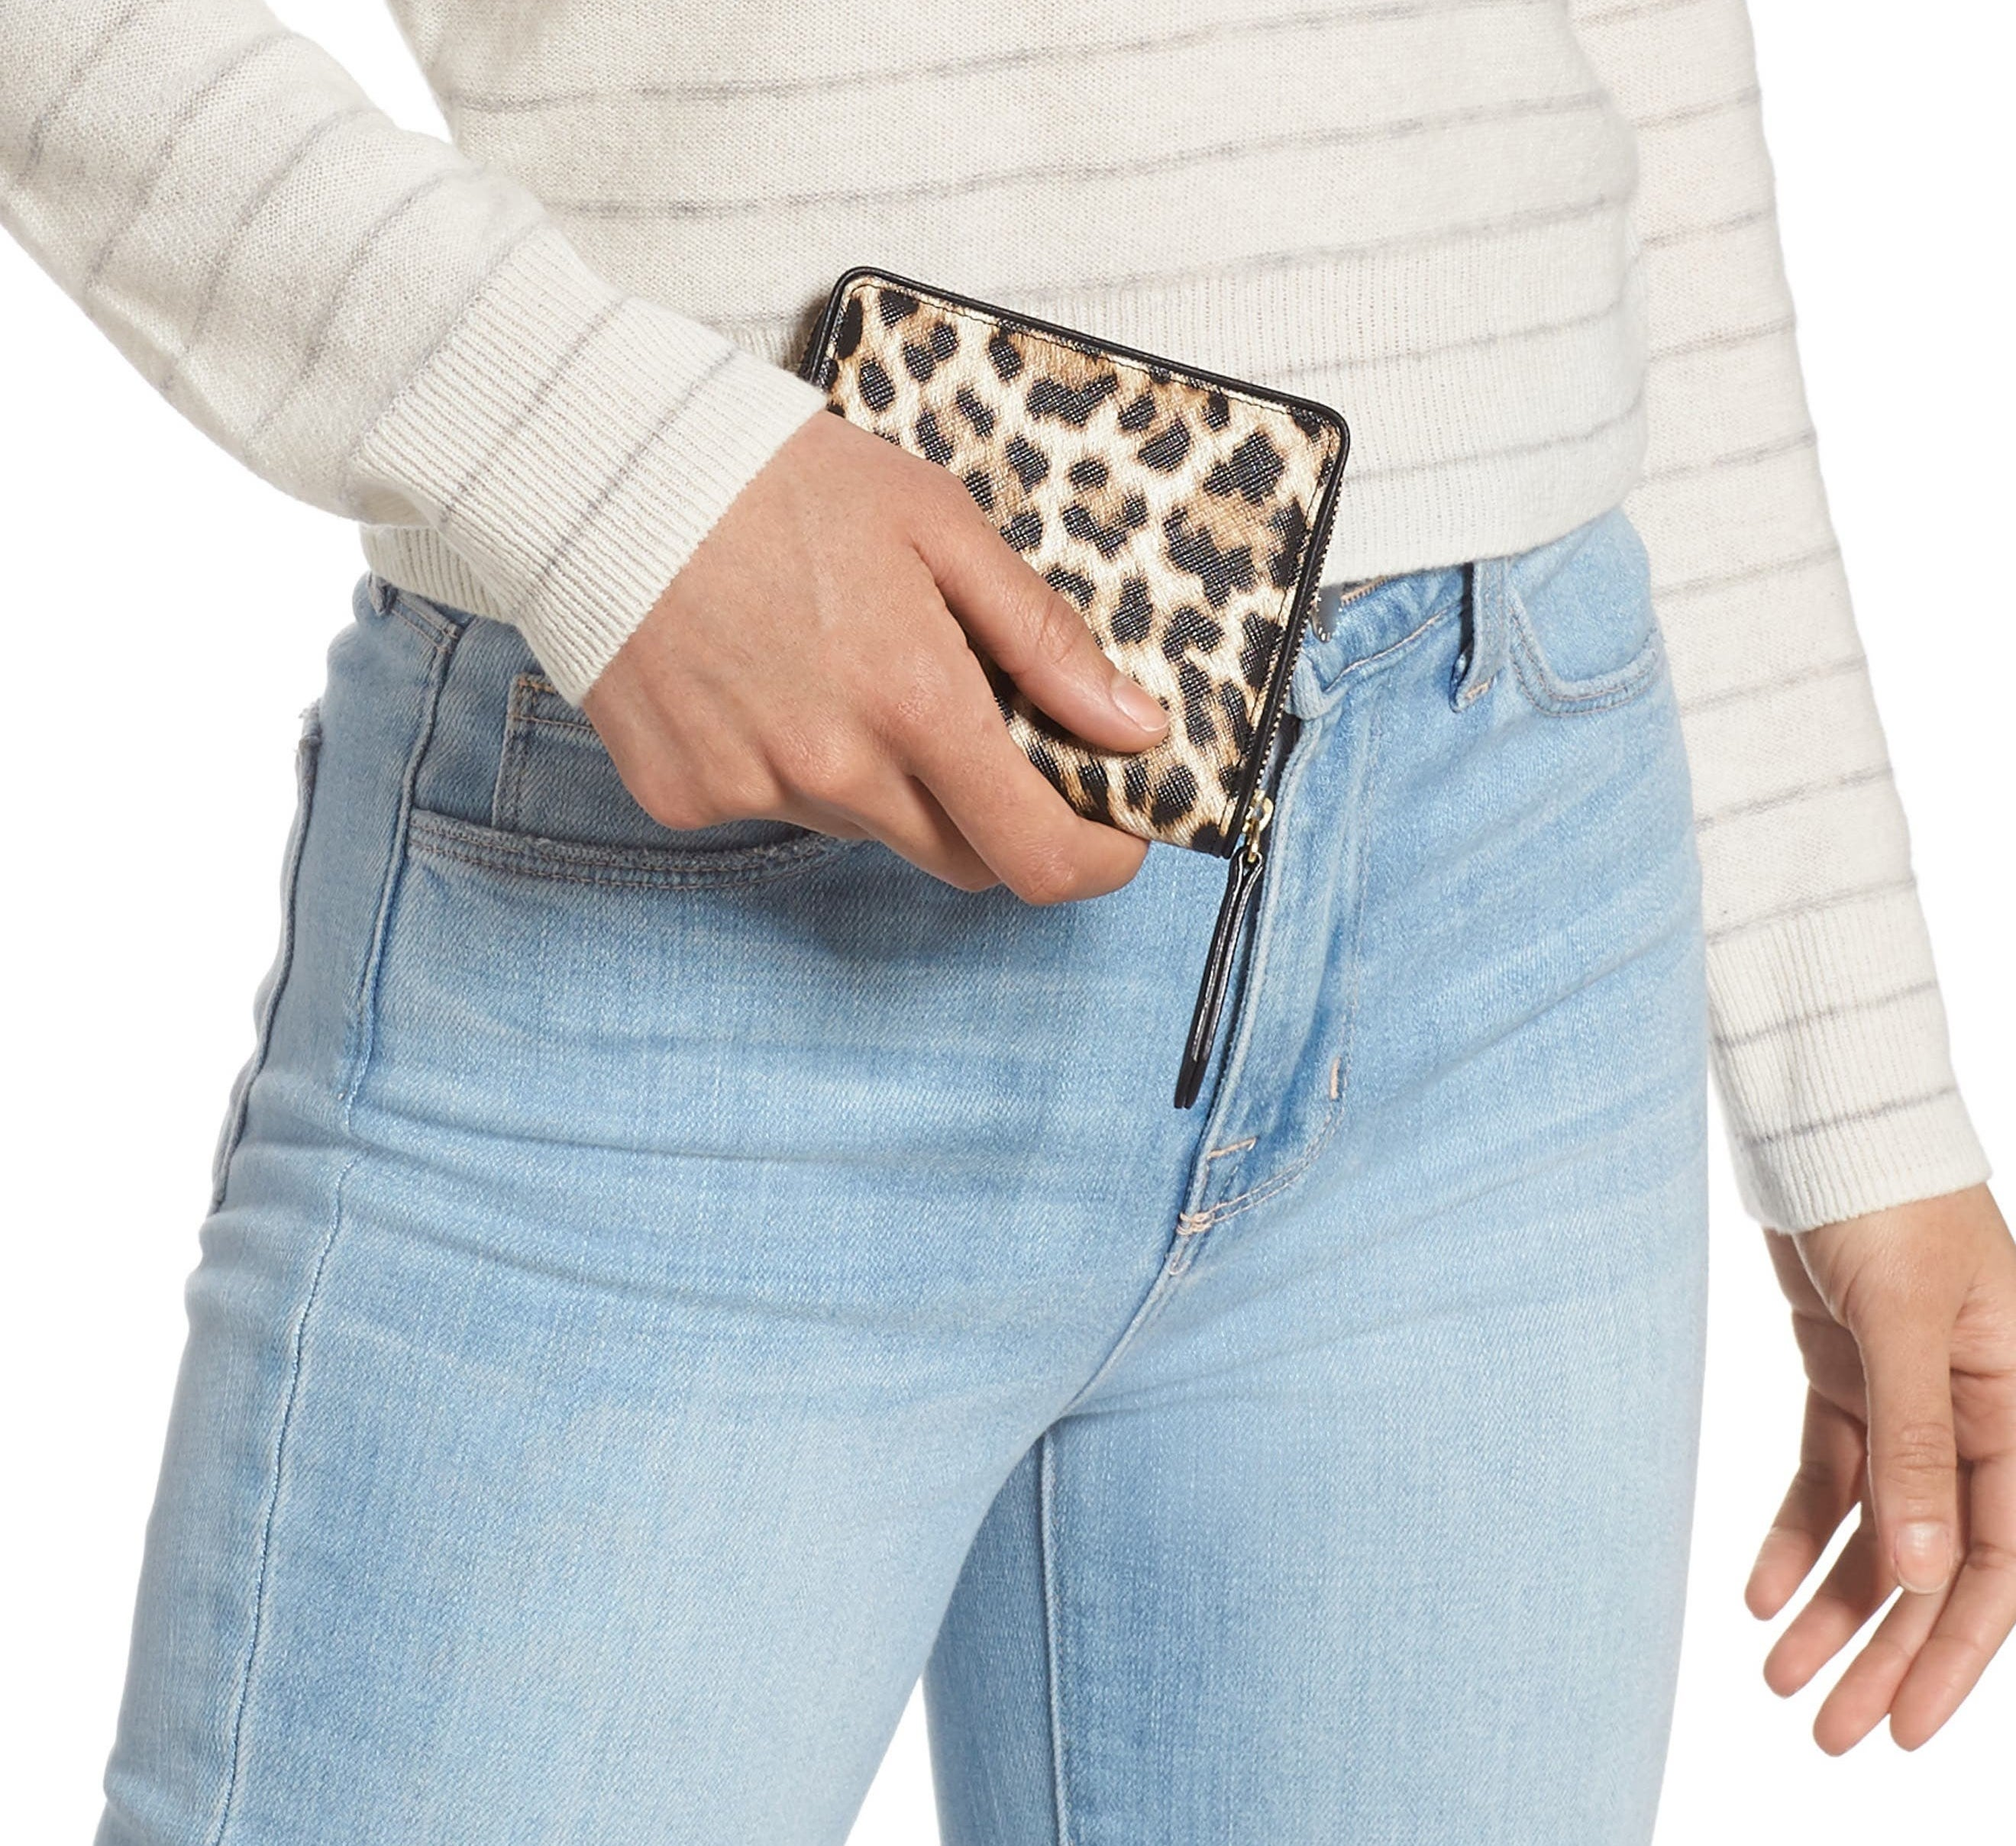 person holding a faux leather wallet on their hand